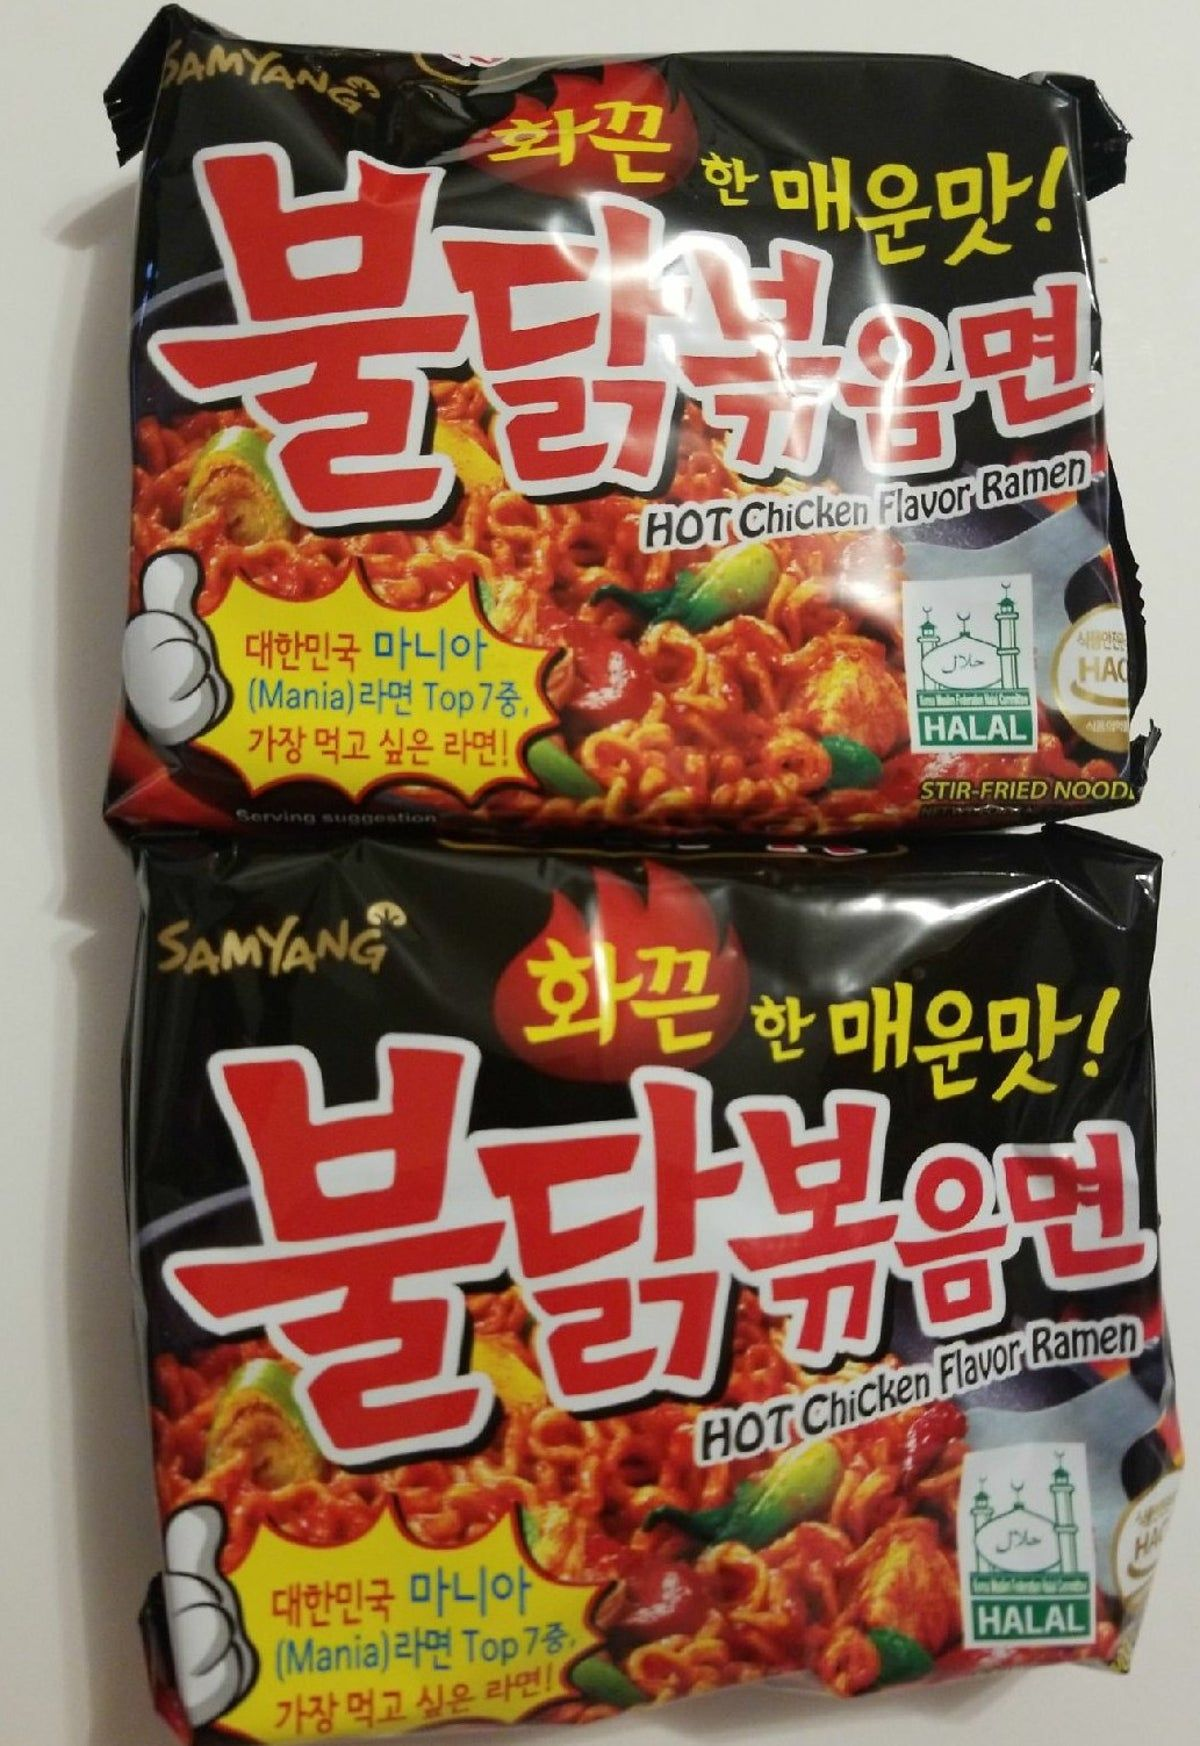 Samyang Spicy Chicken Noodle Challenge On Mercari Spicy Chicken Noodles Spicy Ramen Noodles Chicken Flavors